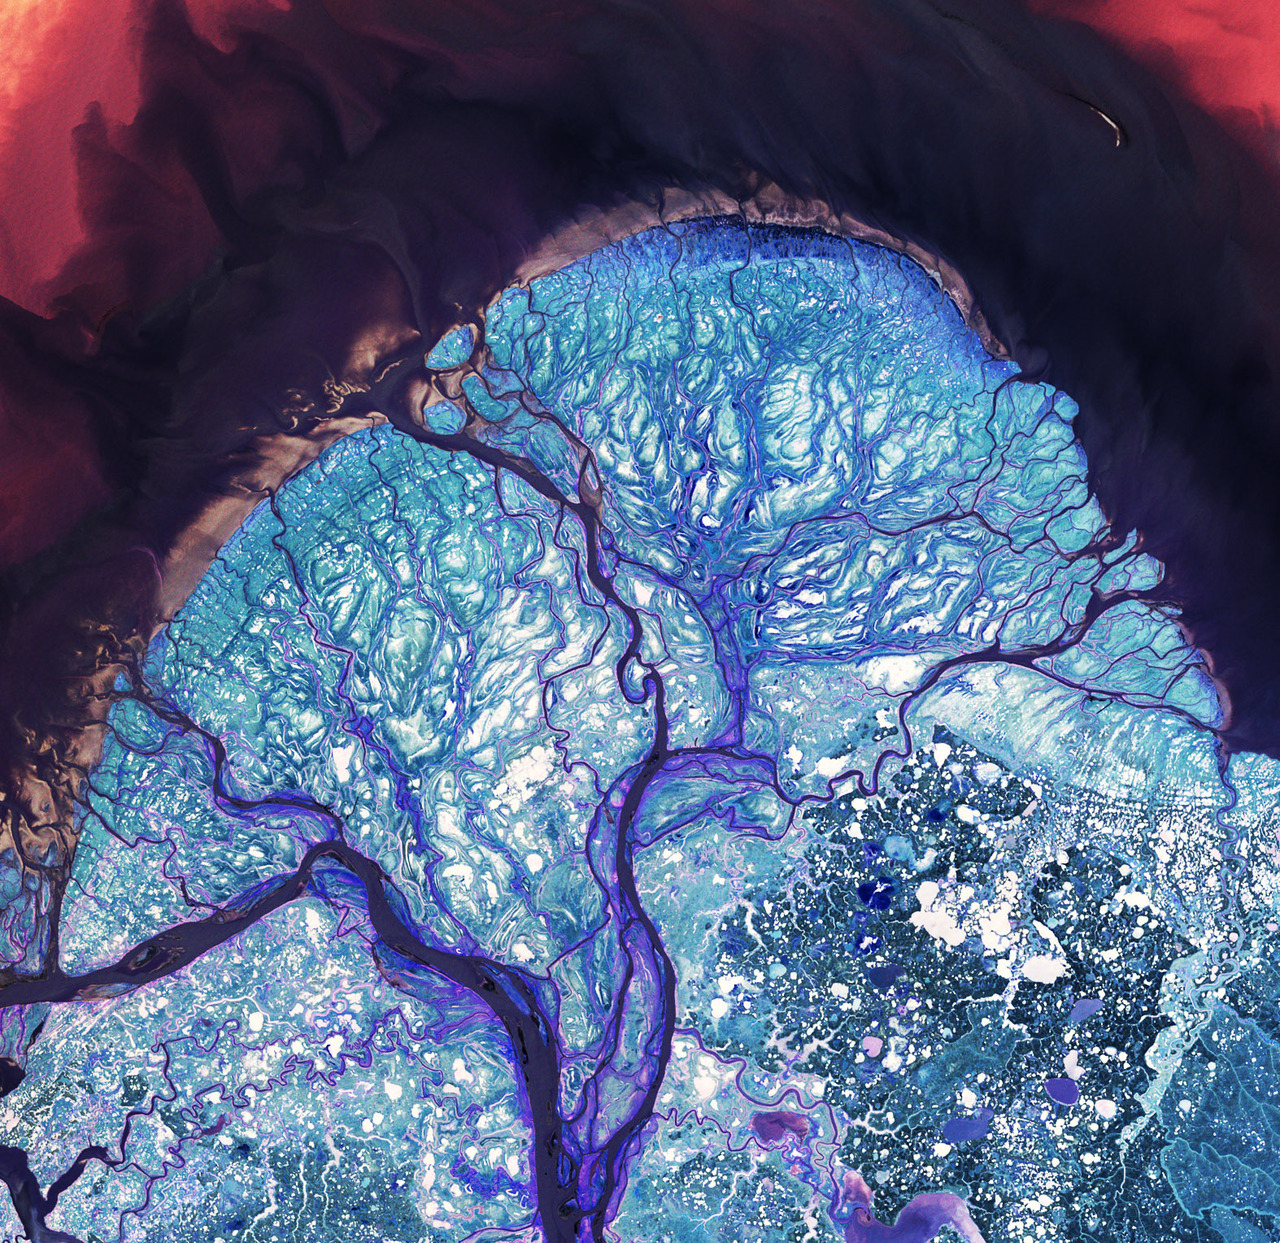 infinity-imagined:  The Yukon River Delta Arteries of a Kidney A Cerebellum An Electrical Discharge